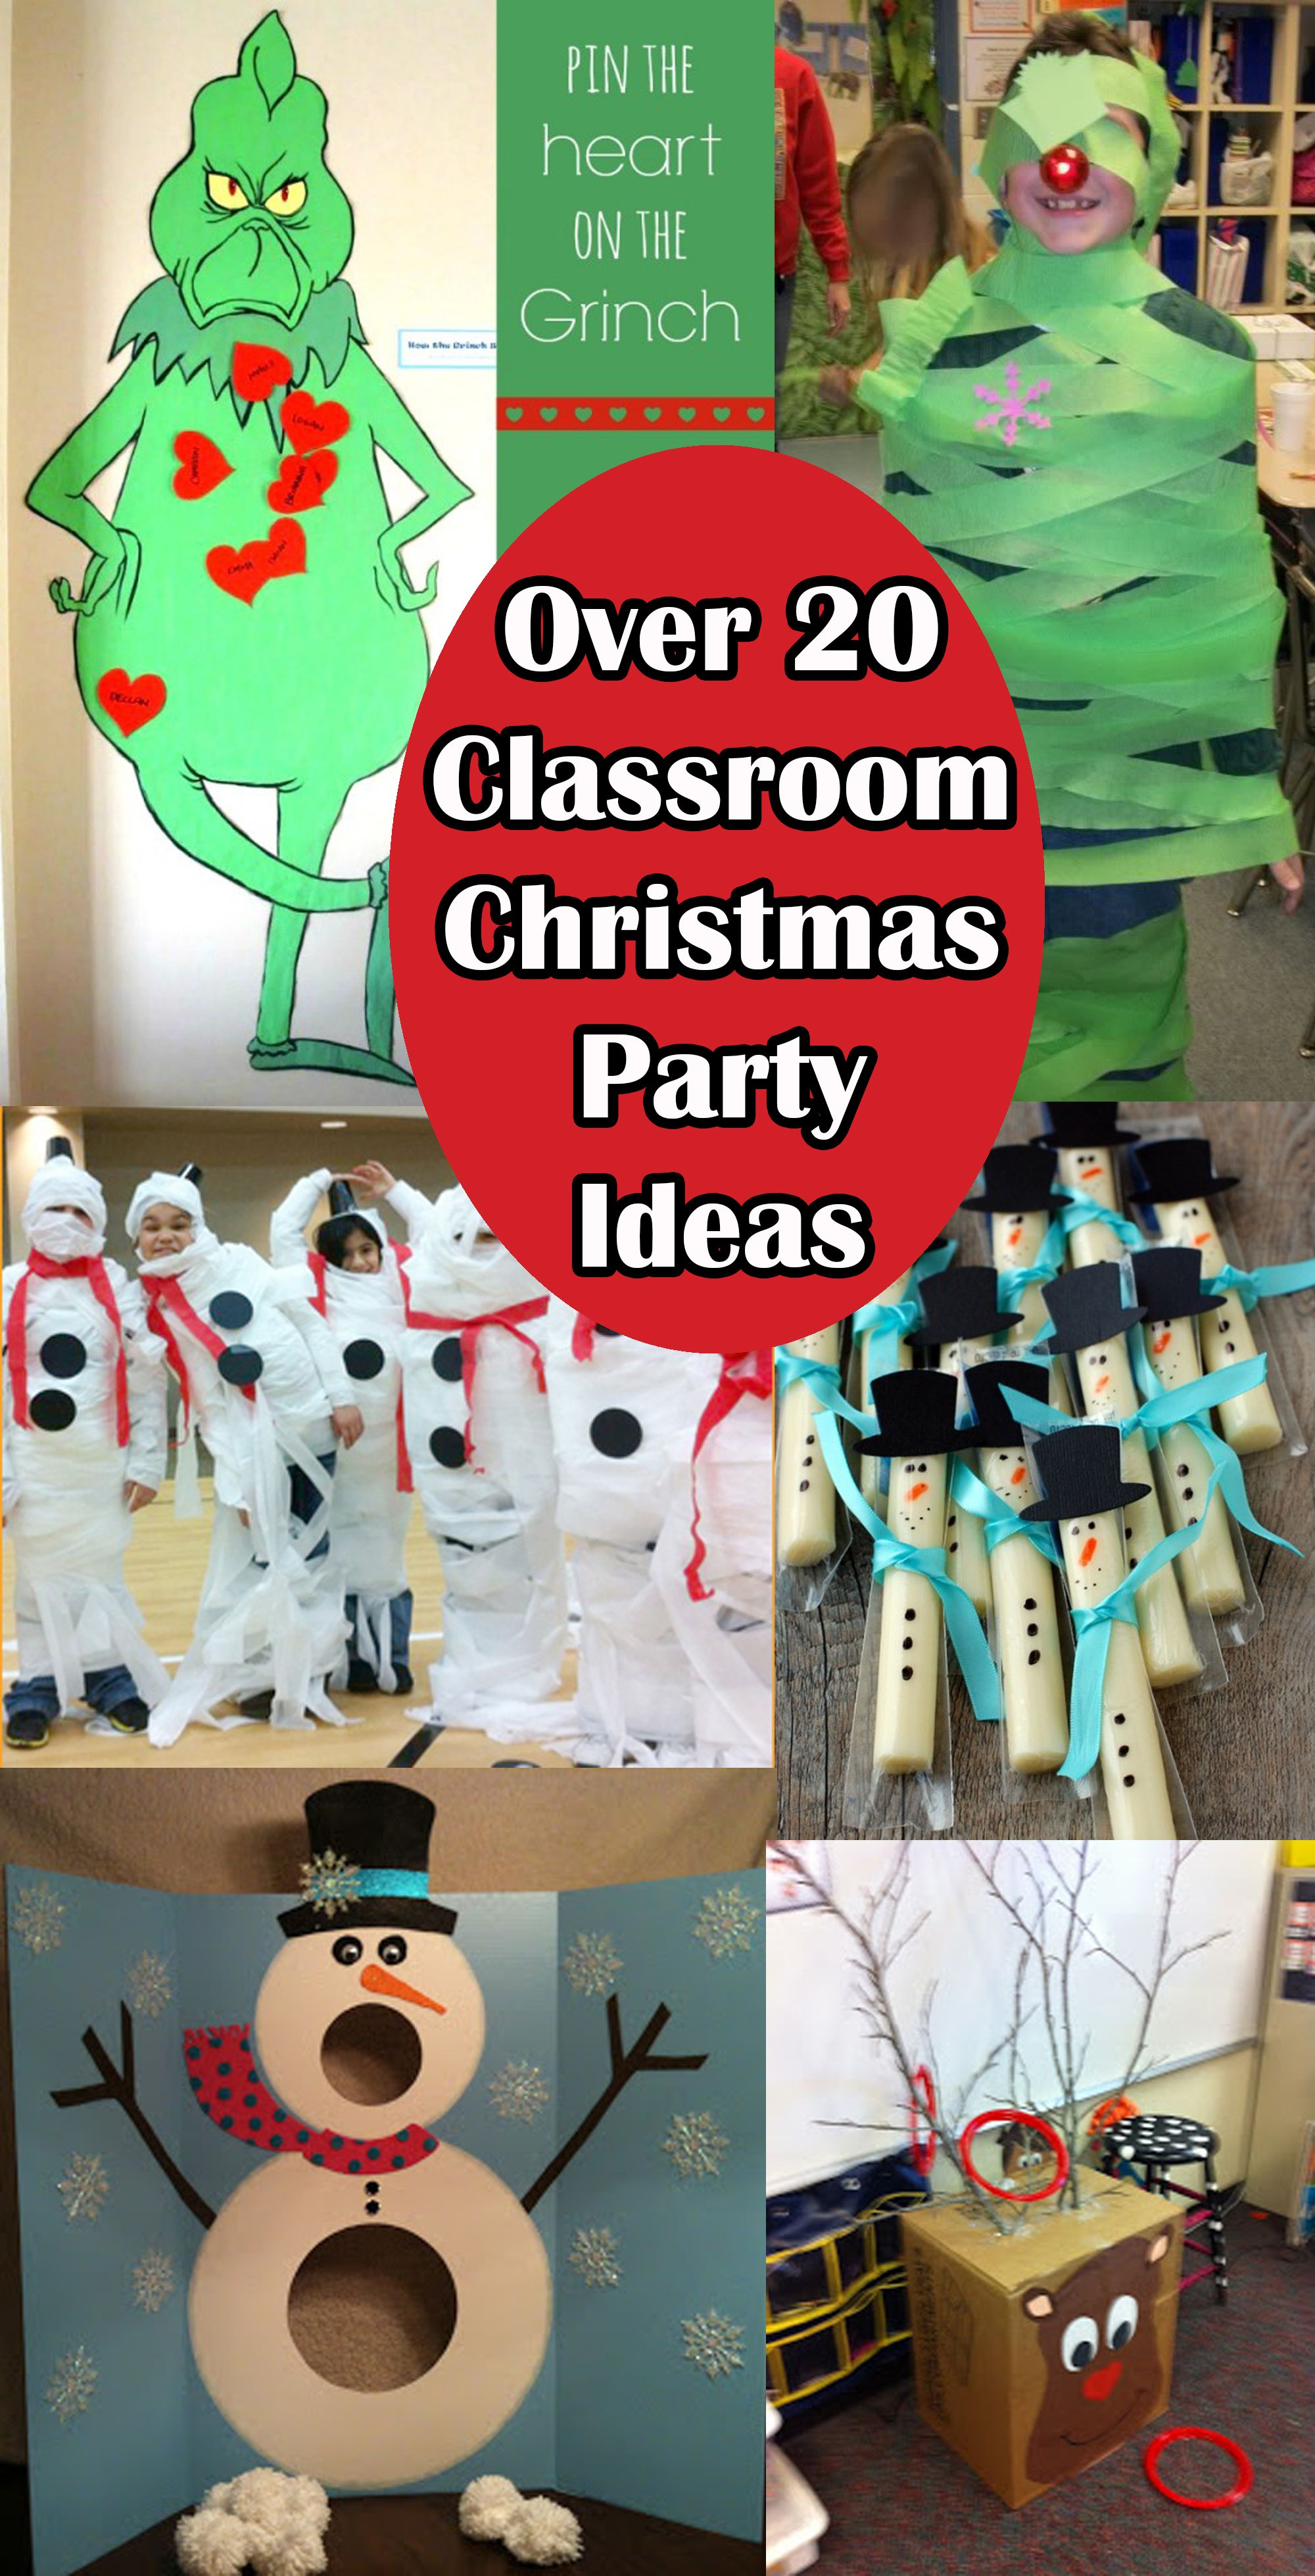 Over 20 Classroom Christmas Party Ideas